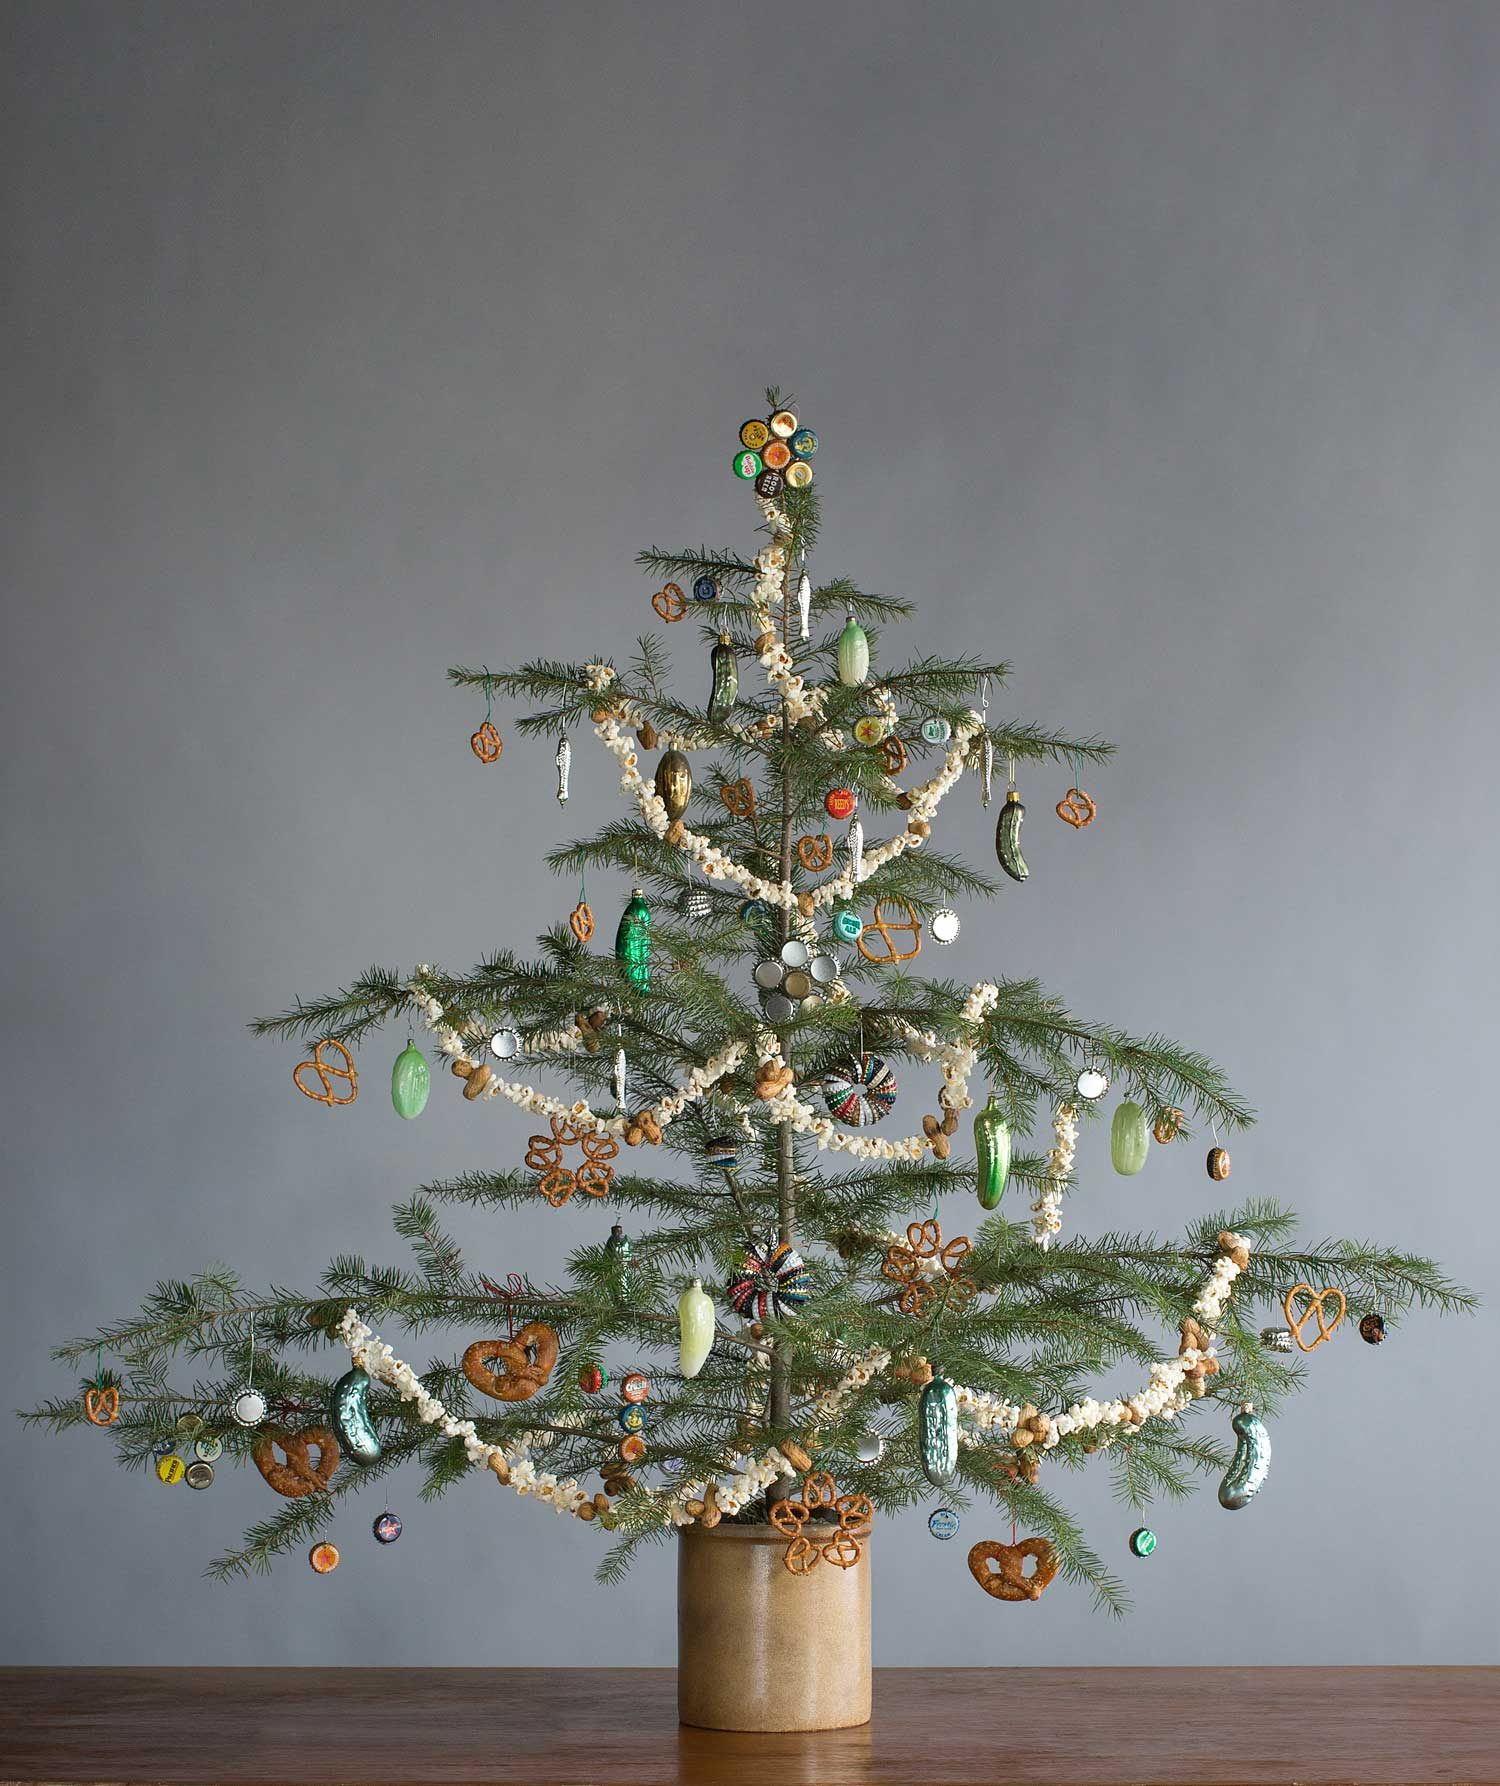 Christmas Decorations: Creative Christmas Tree Decorations